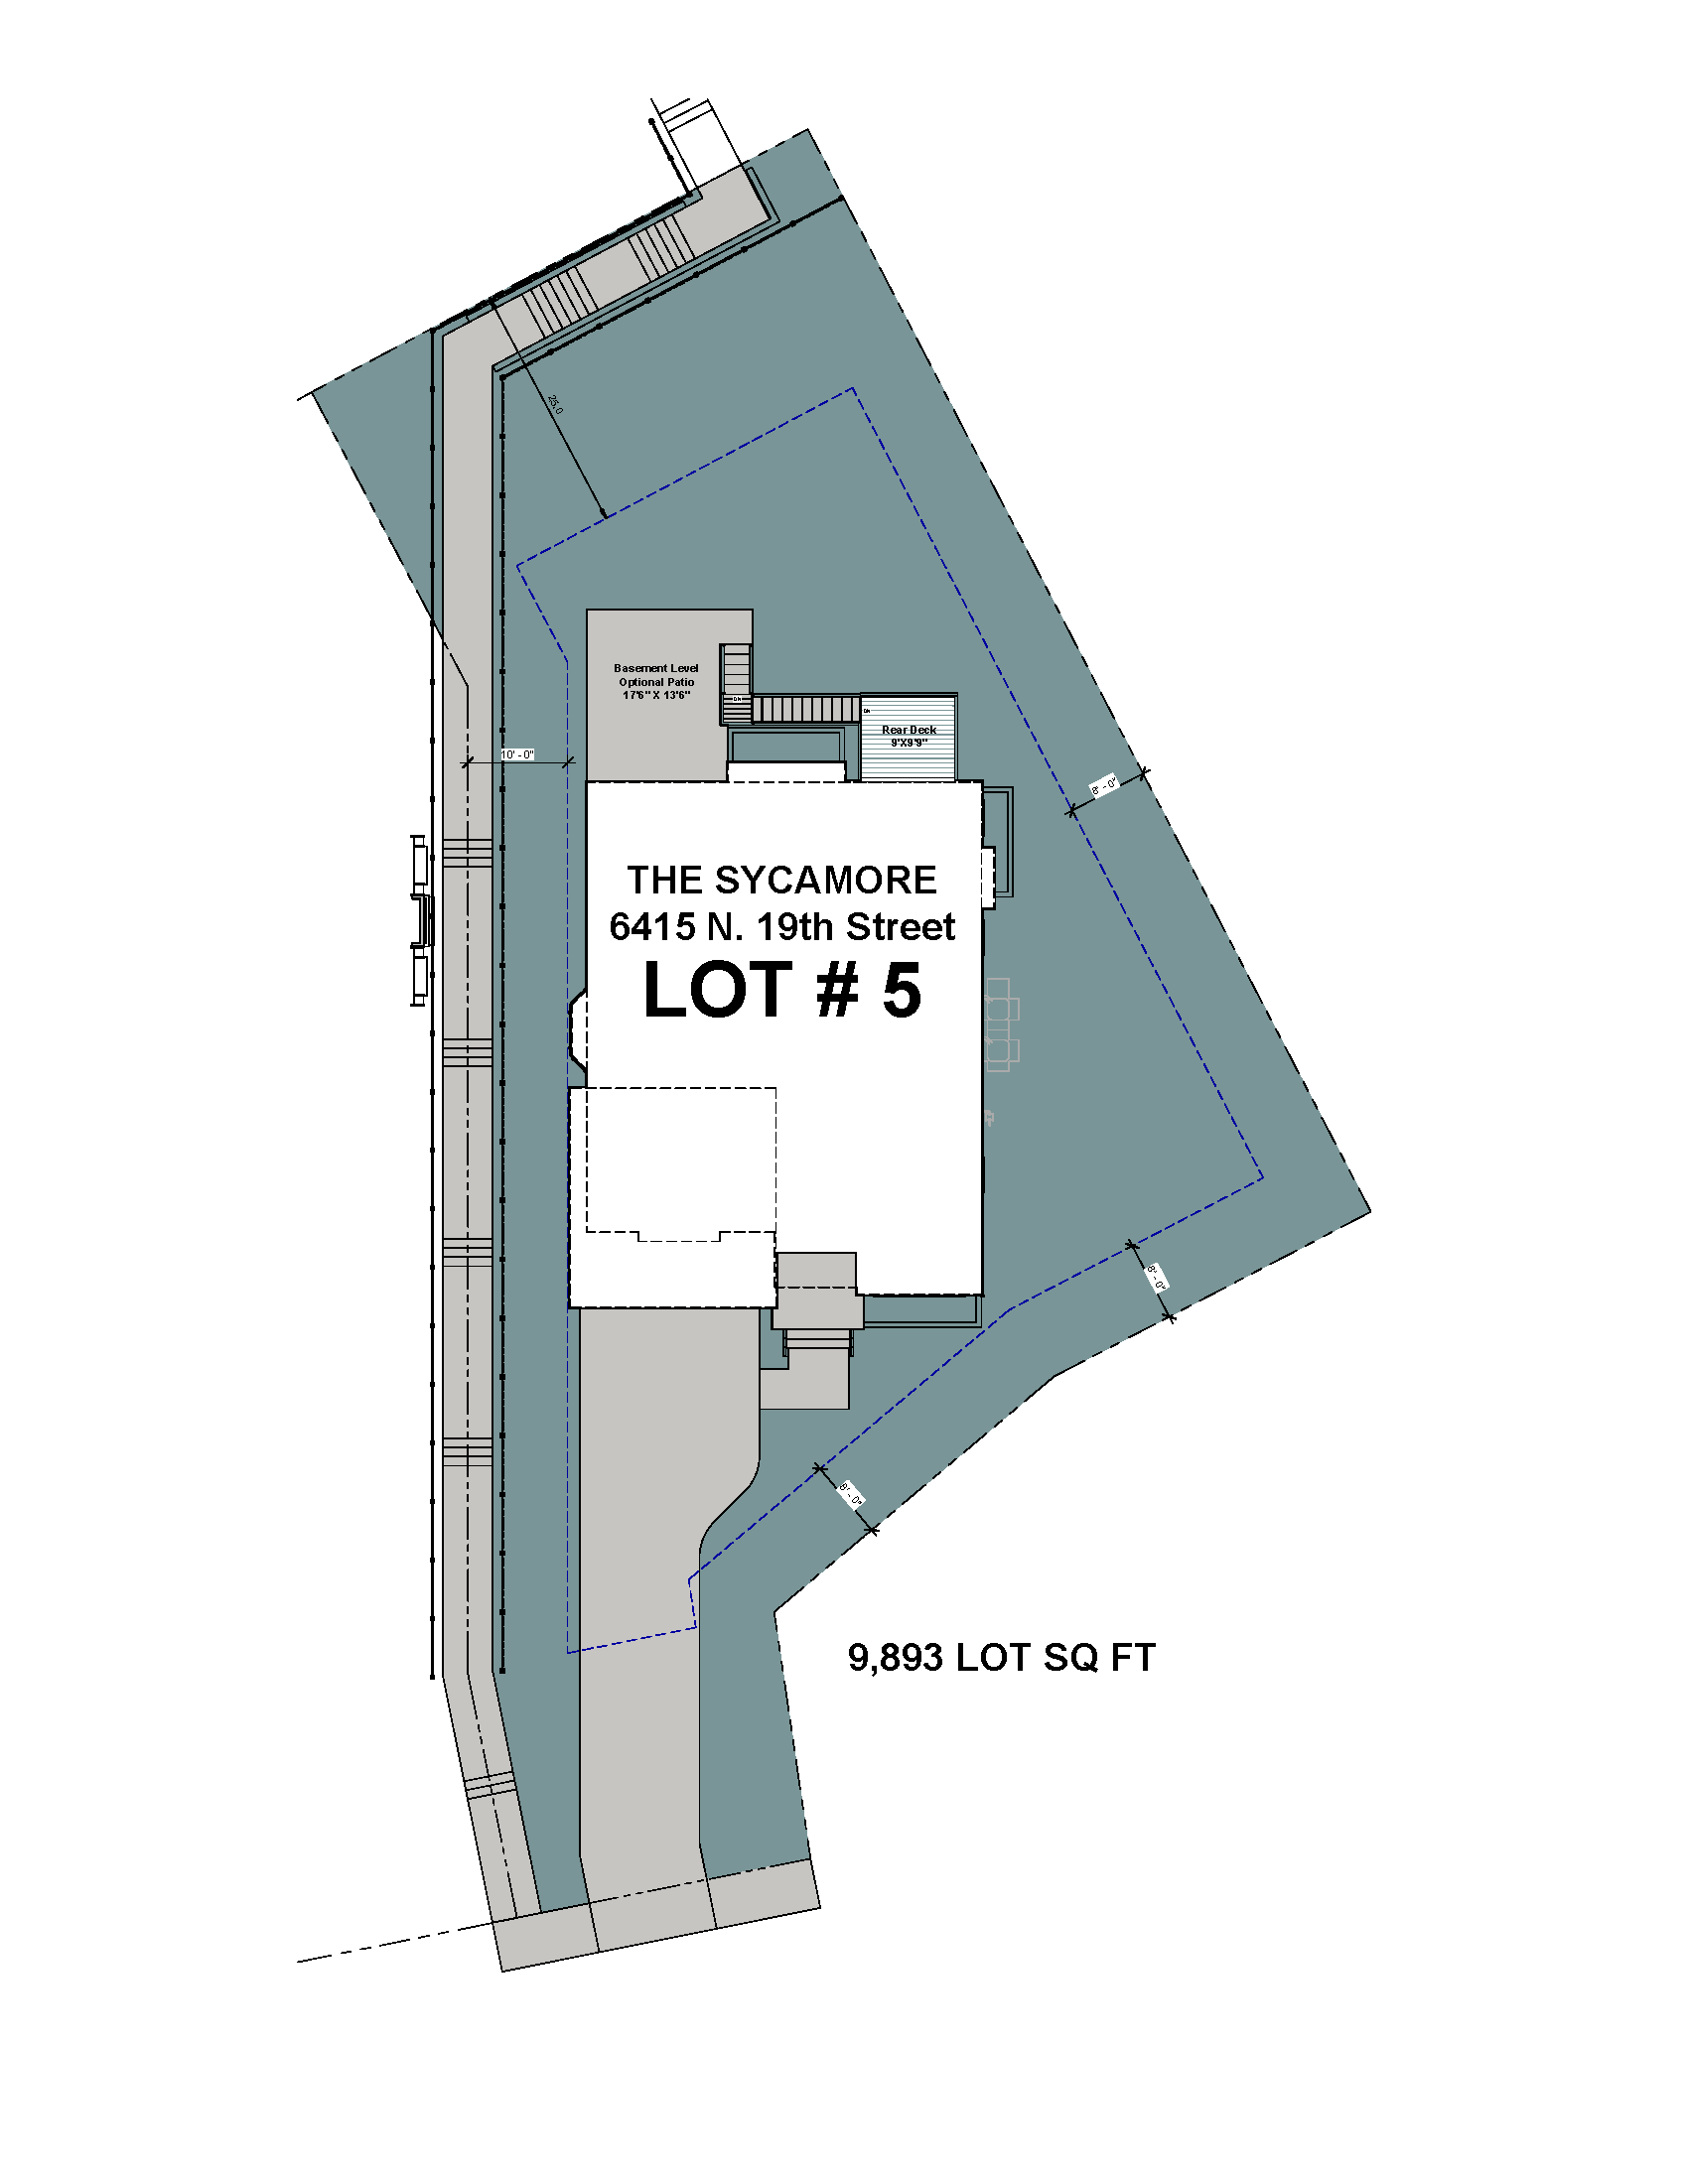 Lot 5 Site Plan-6415 N 19th Street-The Sycamore Model.png